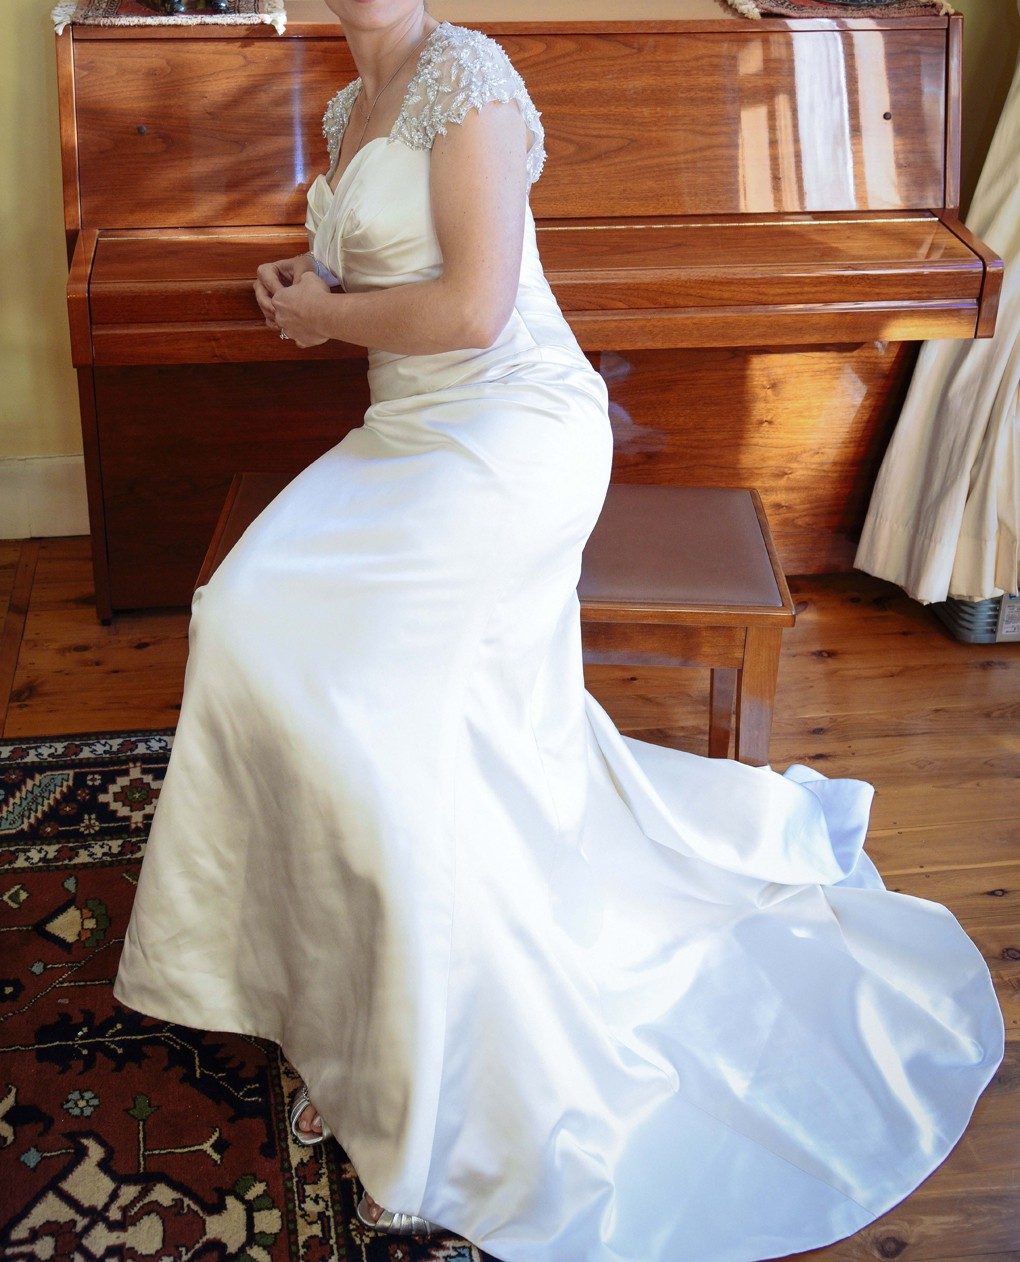 Henry Roth Kaitlyn Preloved Wedding Dress On Sale 83% Off